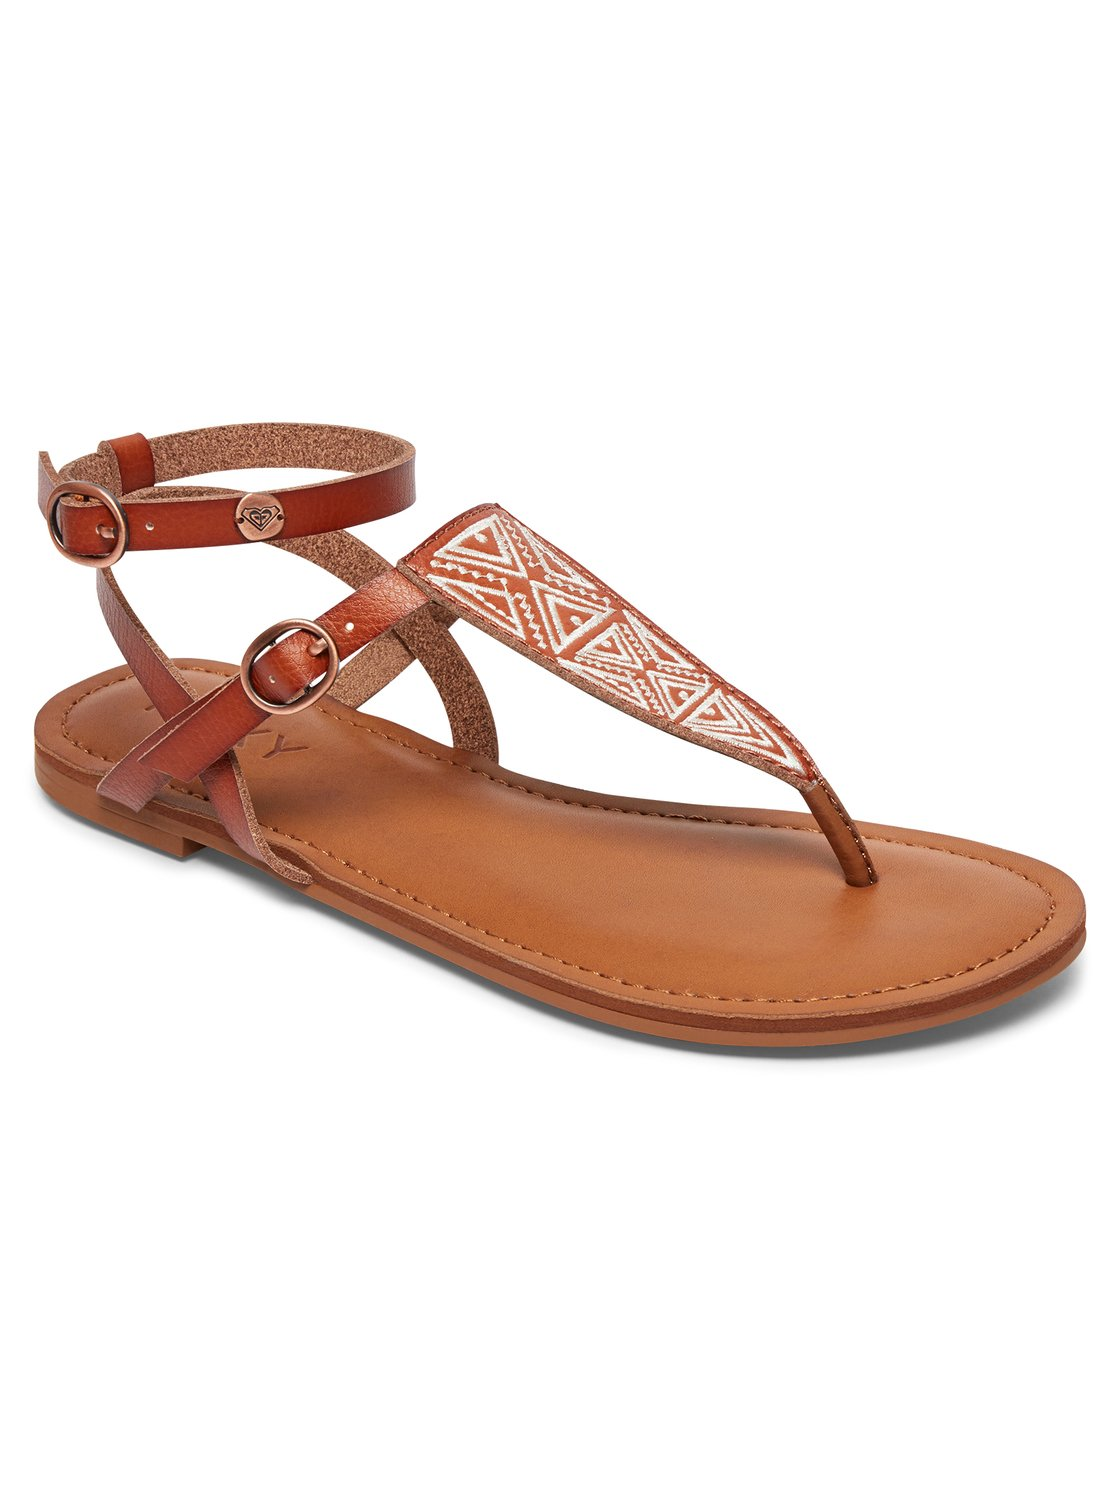 Milet Sandals Arjl200566 Roxy Tendencies Footbed 2 Strap Brown 41 0